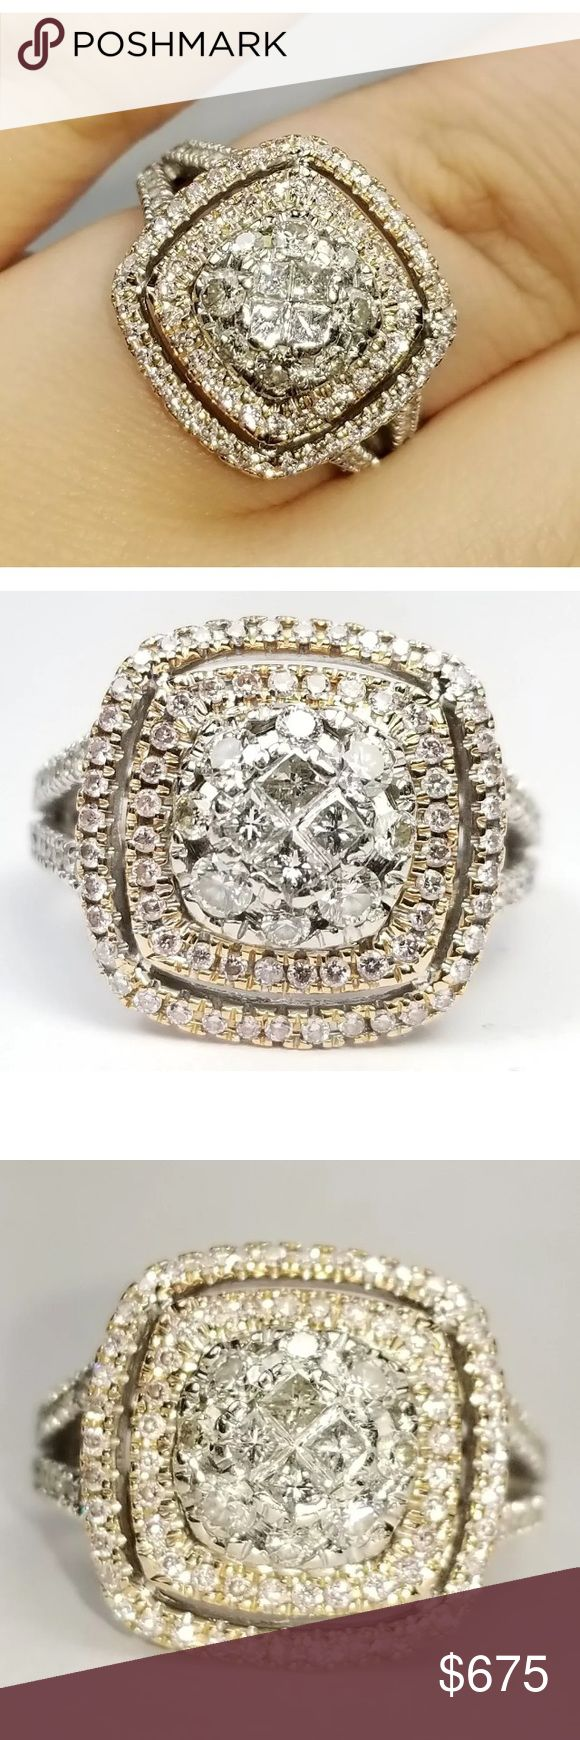 best jewelry images on pinterest ladies accessories chains and